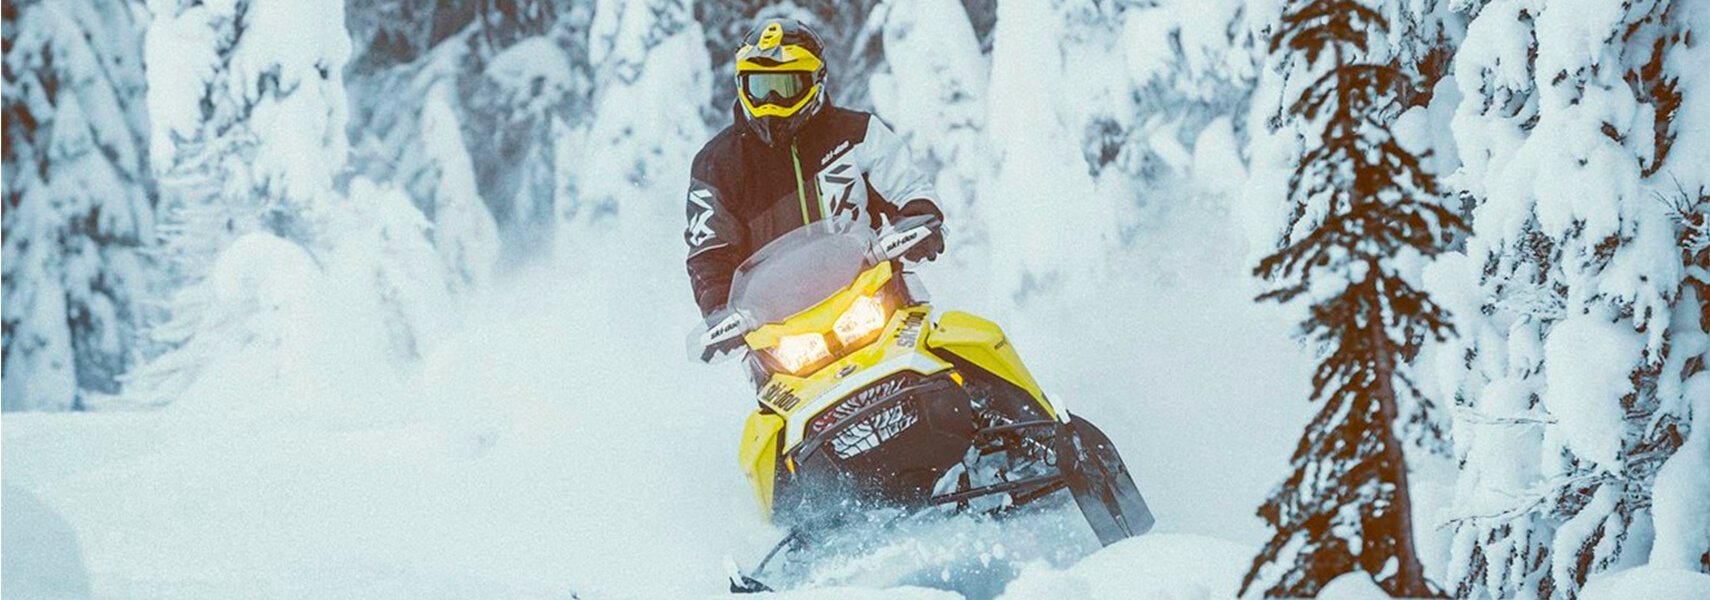 Ski-Doo - 2020 Backcountry